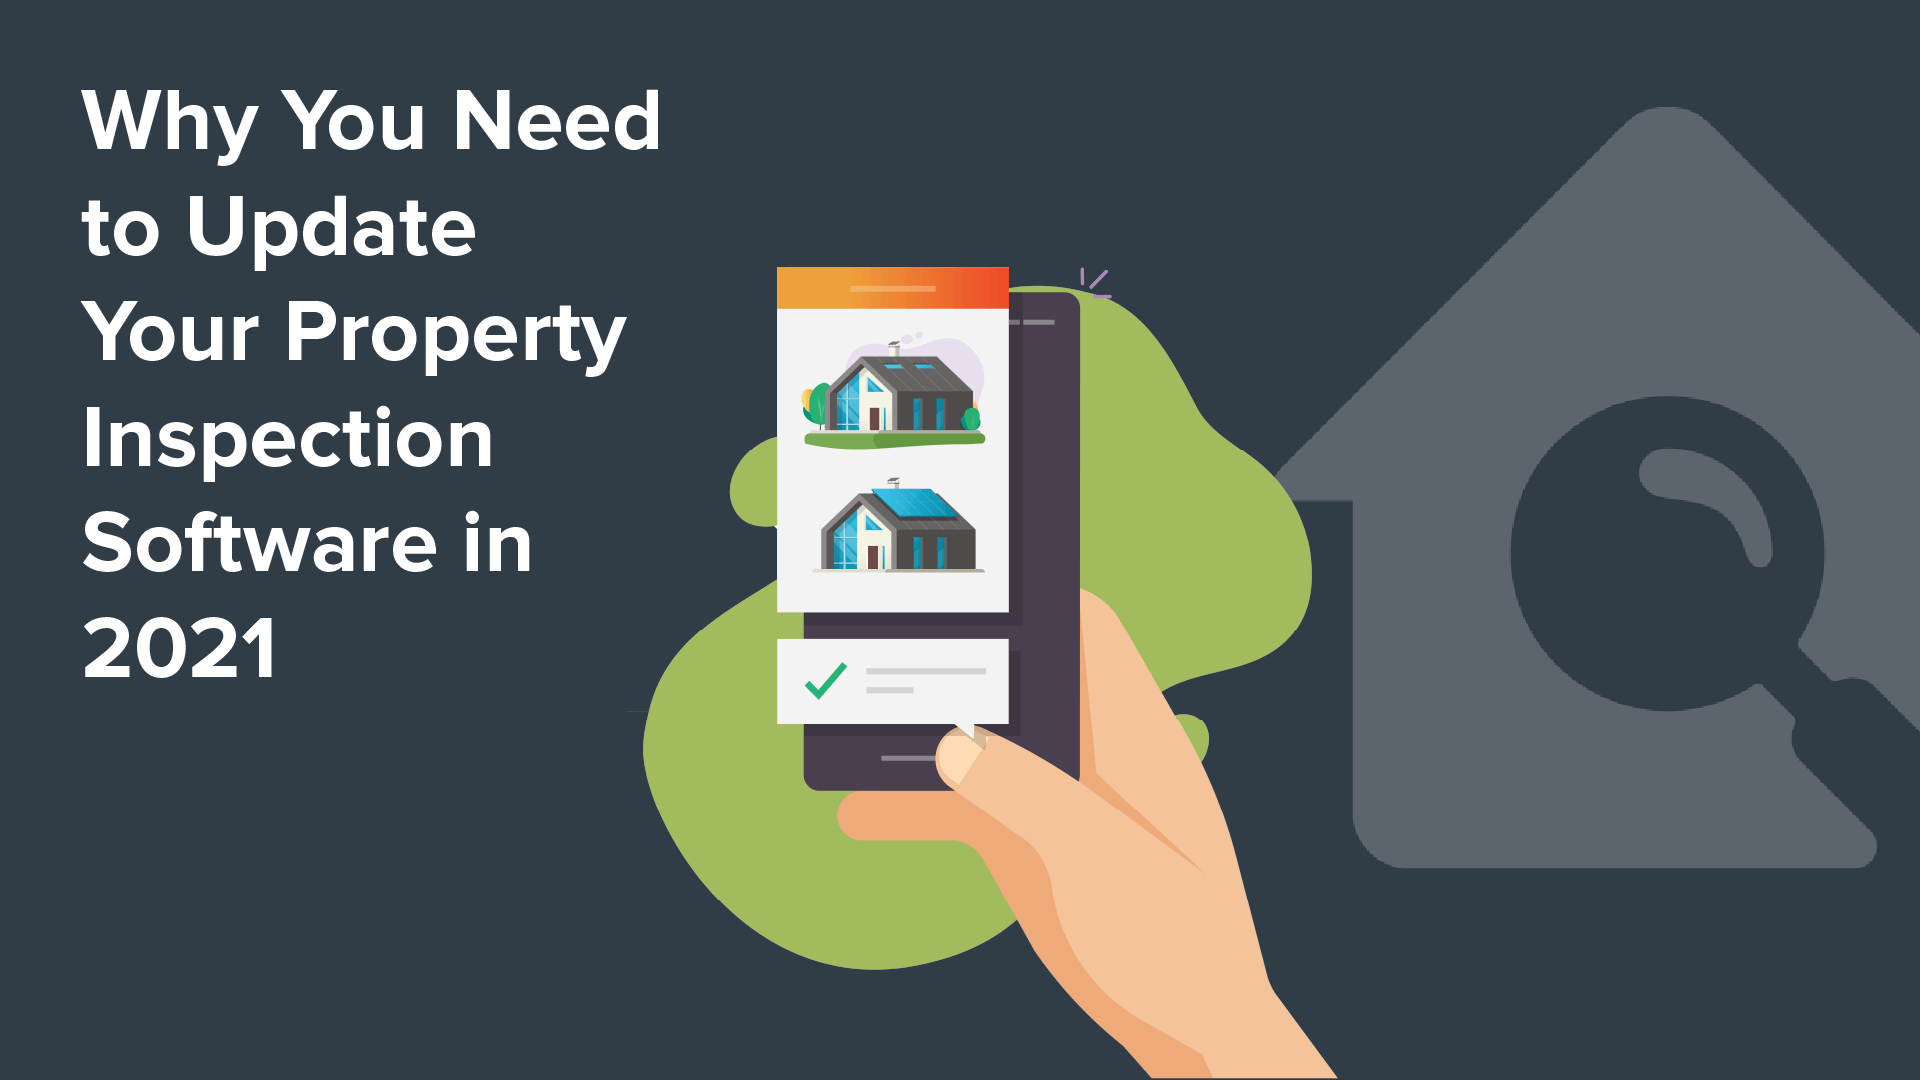 Why You Need to Update Your Property Inspection Software in 2021